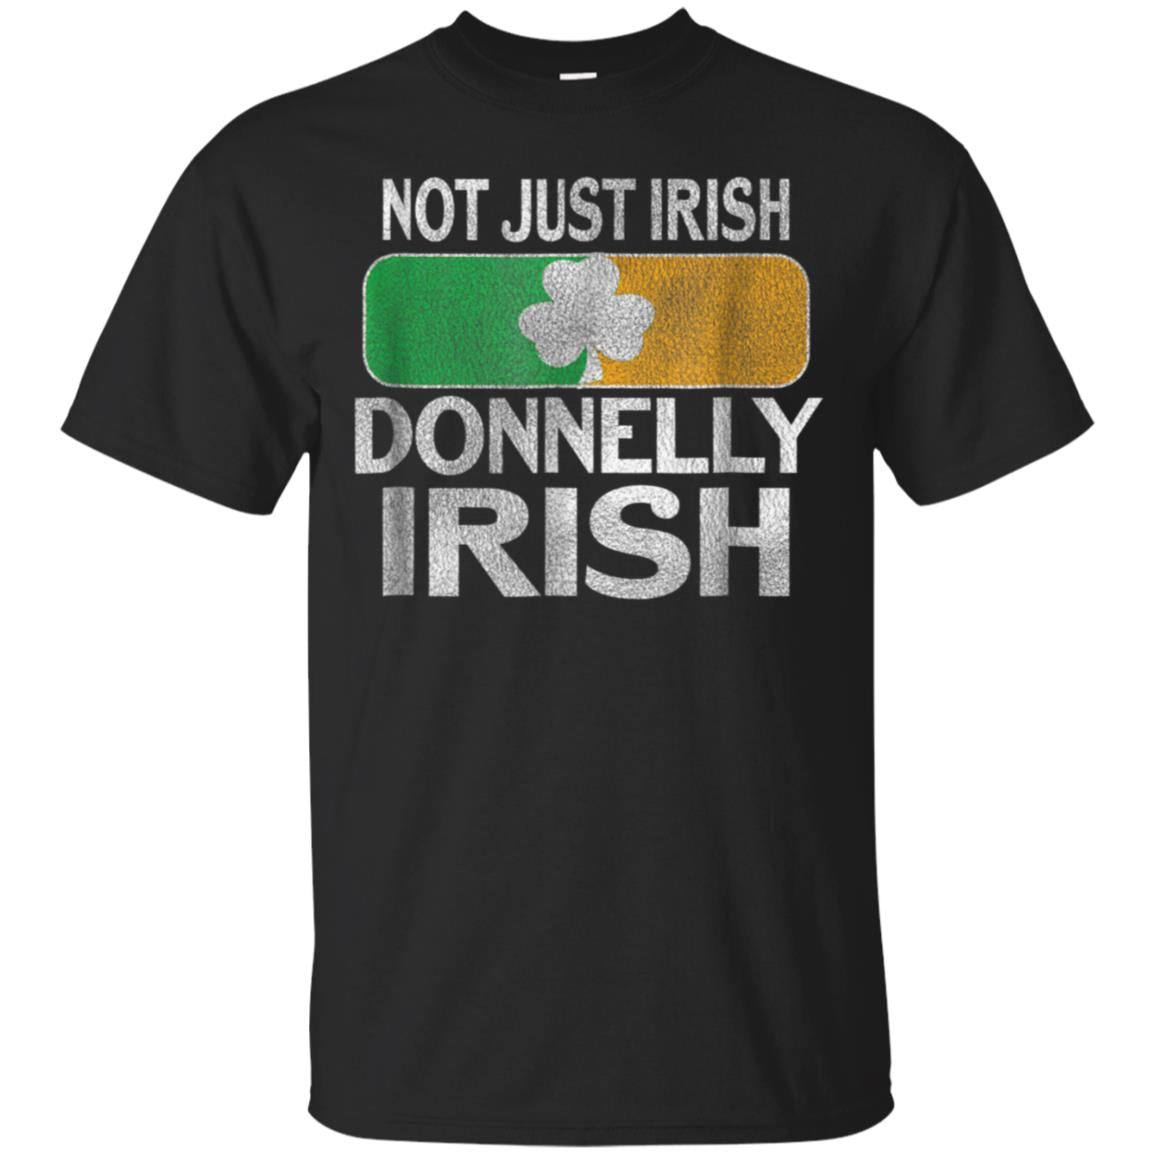 Not Just Irish Donnelly Irish T-Shirt 99promocode